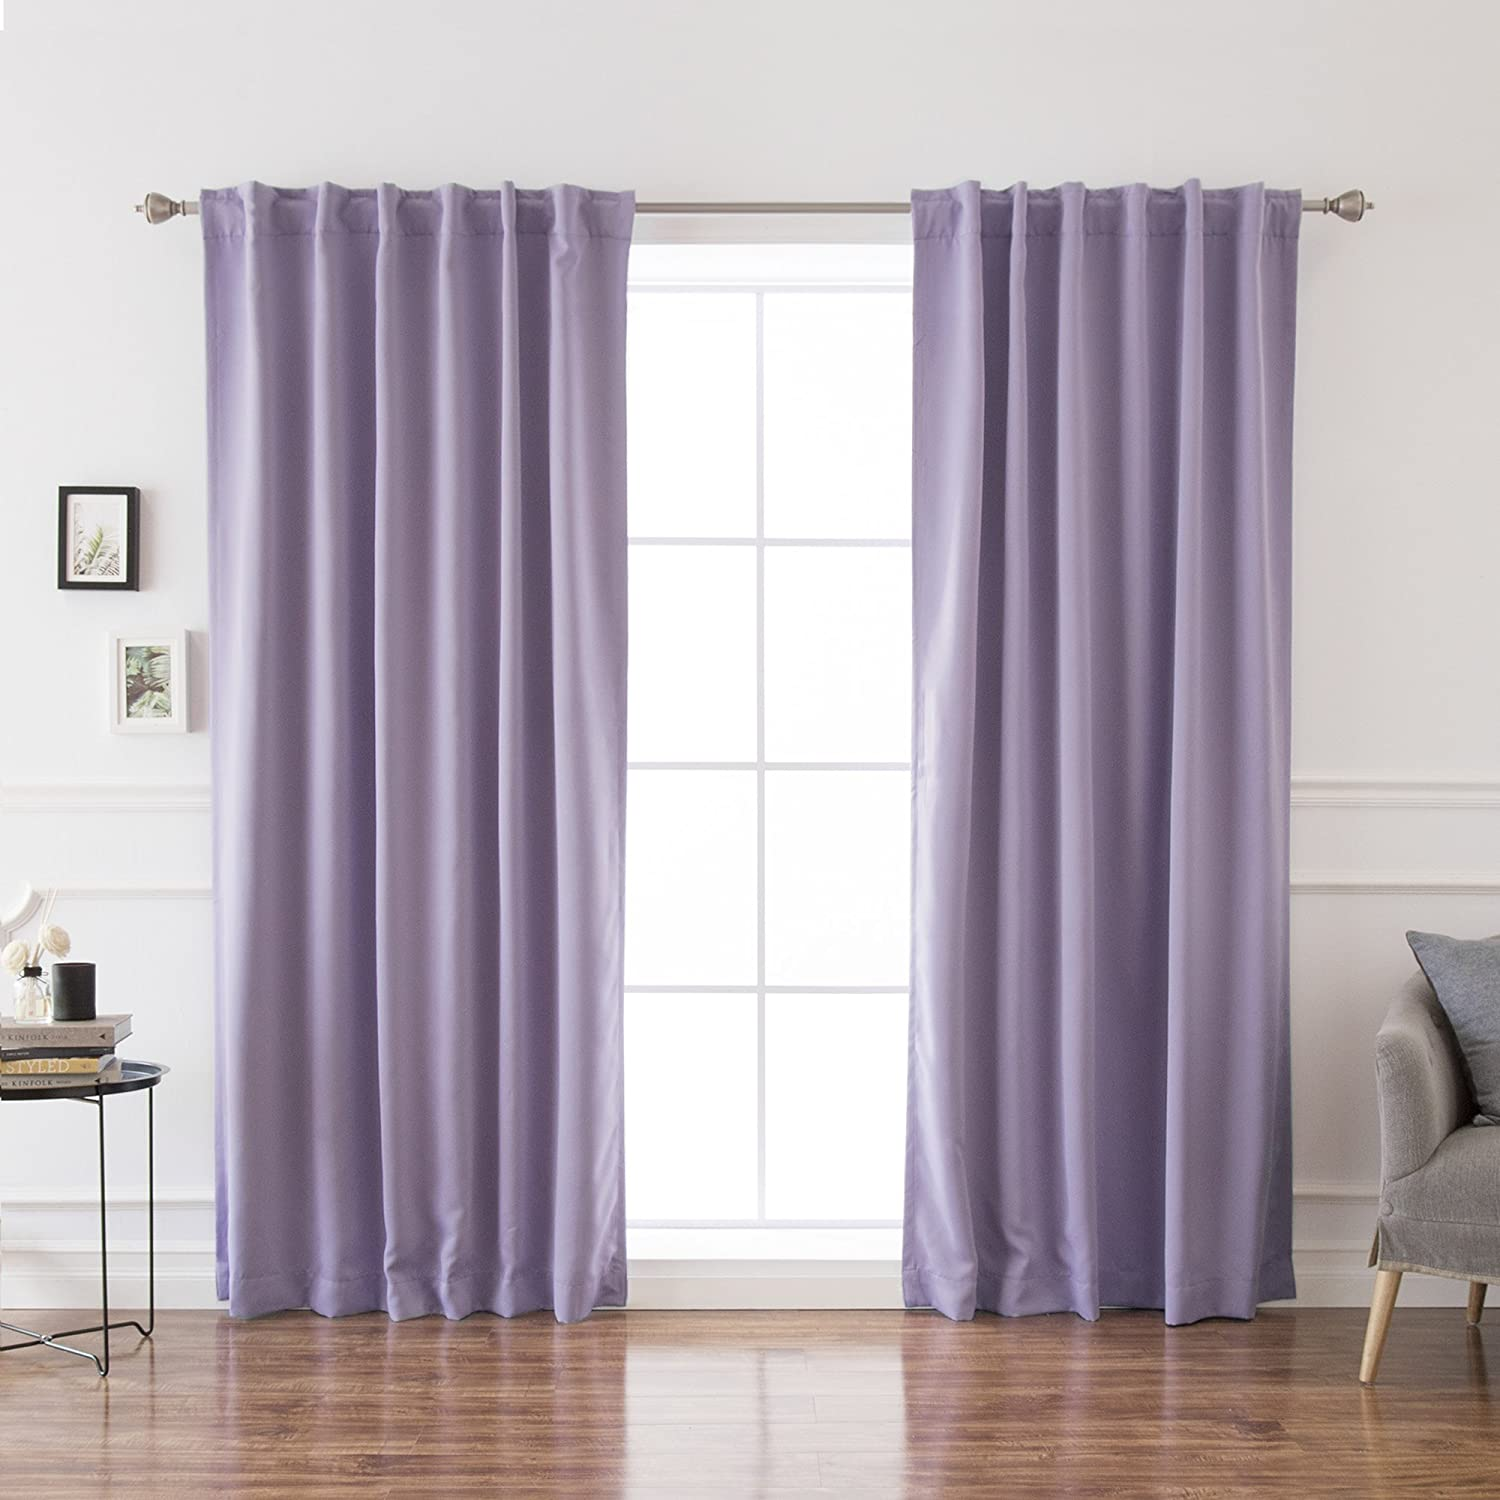 Best Home Fashion Premium Blackout Curtain Panels - Solid Thermal Insulated Window Treatment Blackout Drapes for Bedroom - Back Tab & Rod Pocket – Lavender - 52